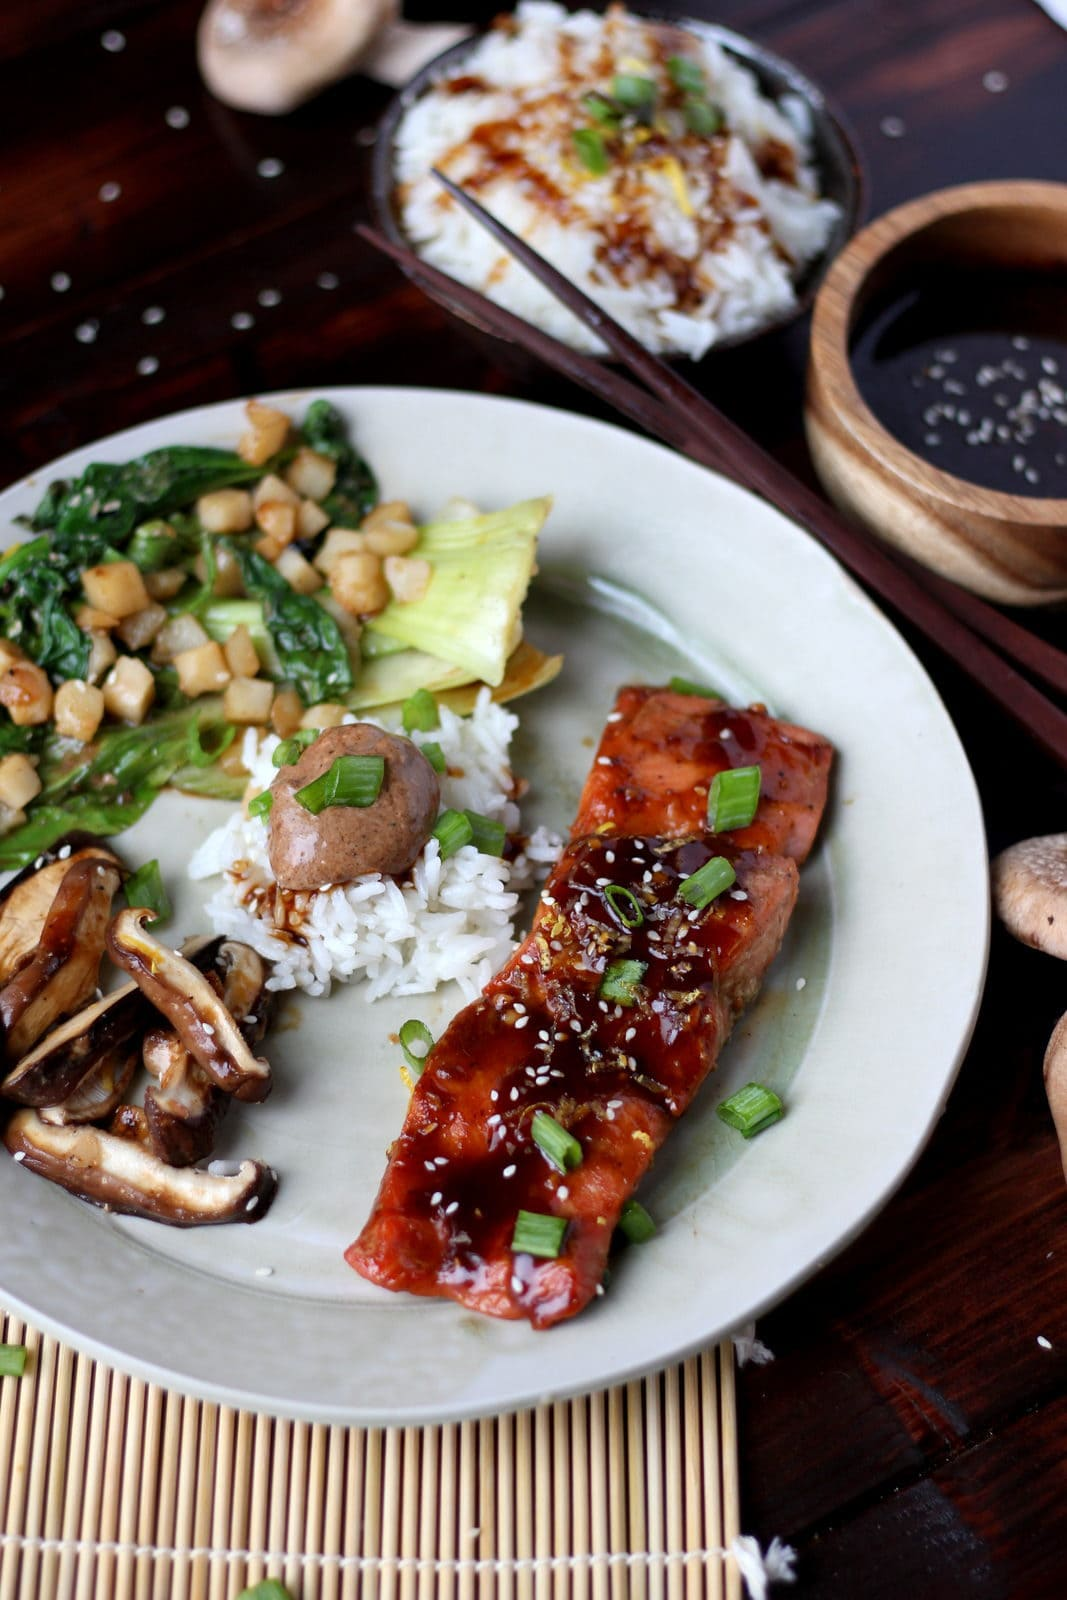 Miso Salmon in Foil with Shiitake Mushrooms, Baby Bok Choy, Spinach, Water Chestnuts and Miso Mayo over Rice - thewoodenskillet.com